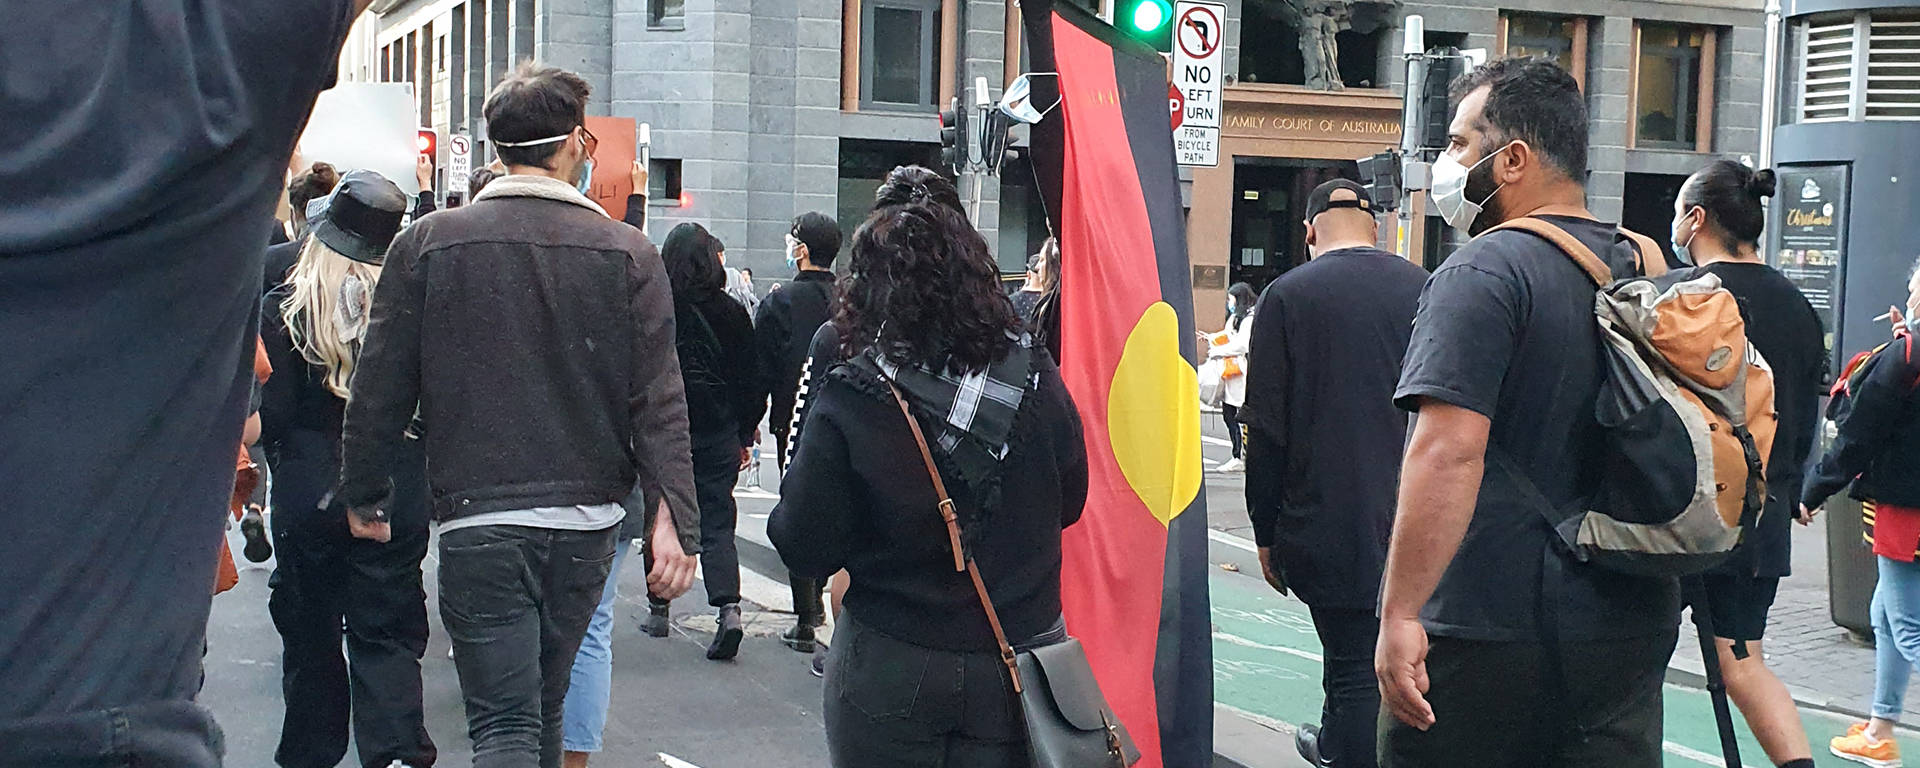 Protesters at the Stop Black Deaths in Custody march in Sydney. One man carries the Aboriginal flag